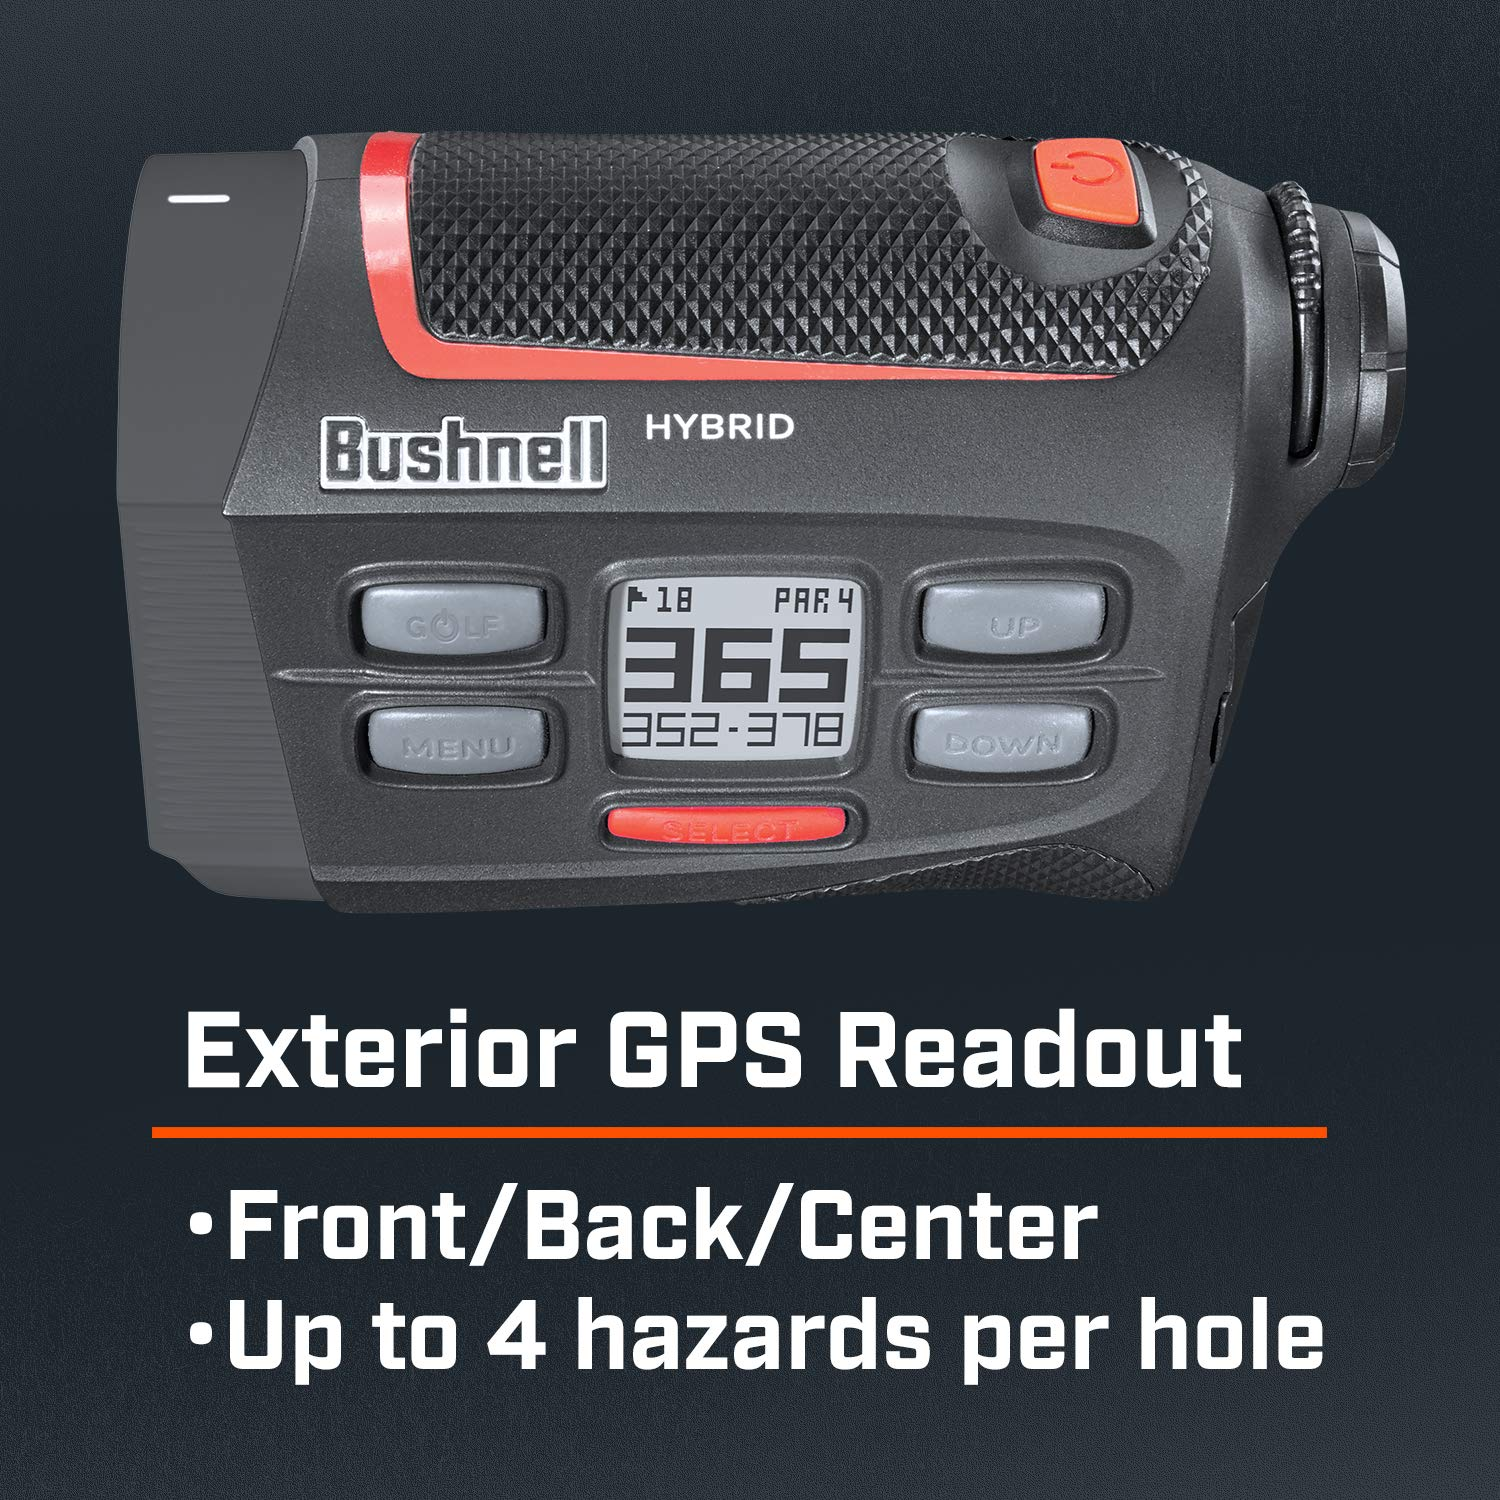 Bushnell Hybrid laser rangefinder with built-in GPS